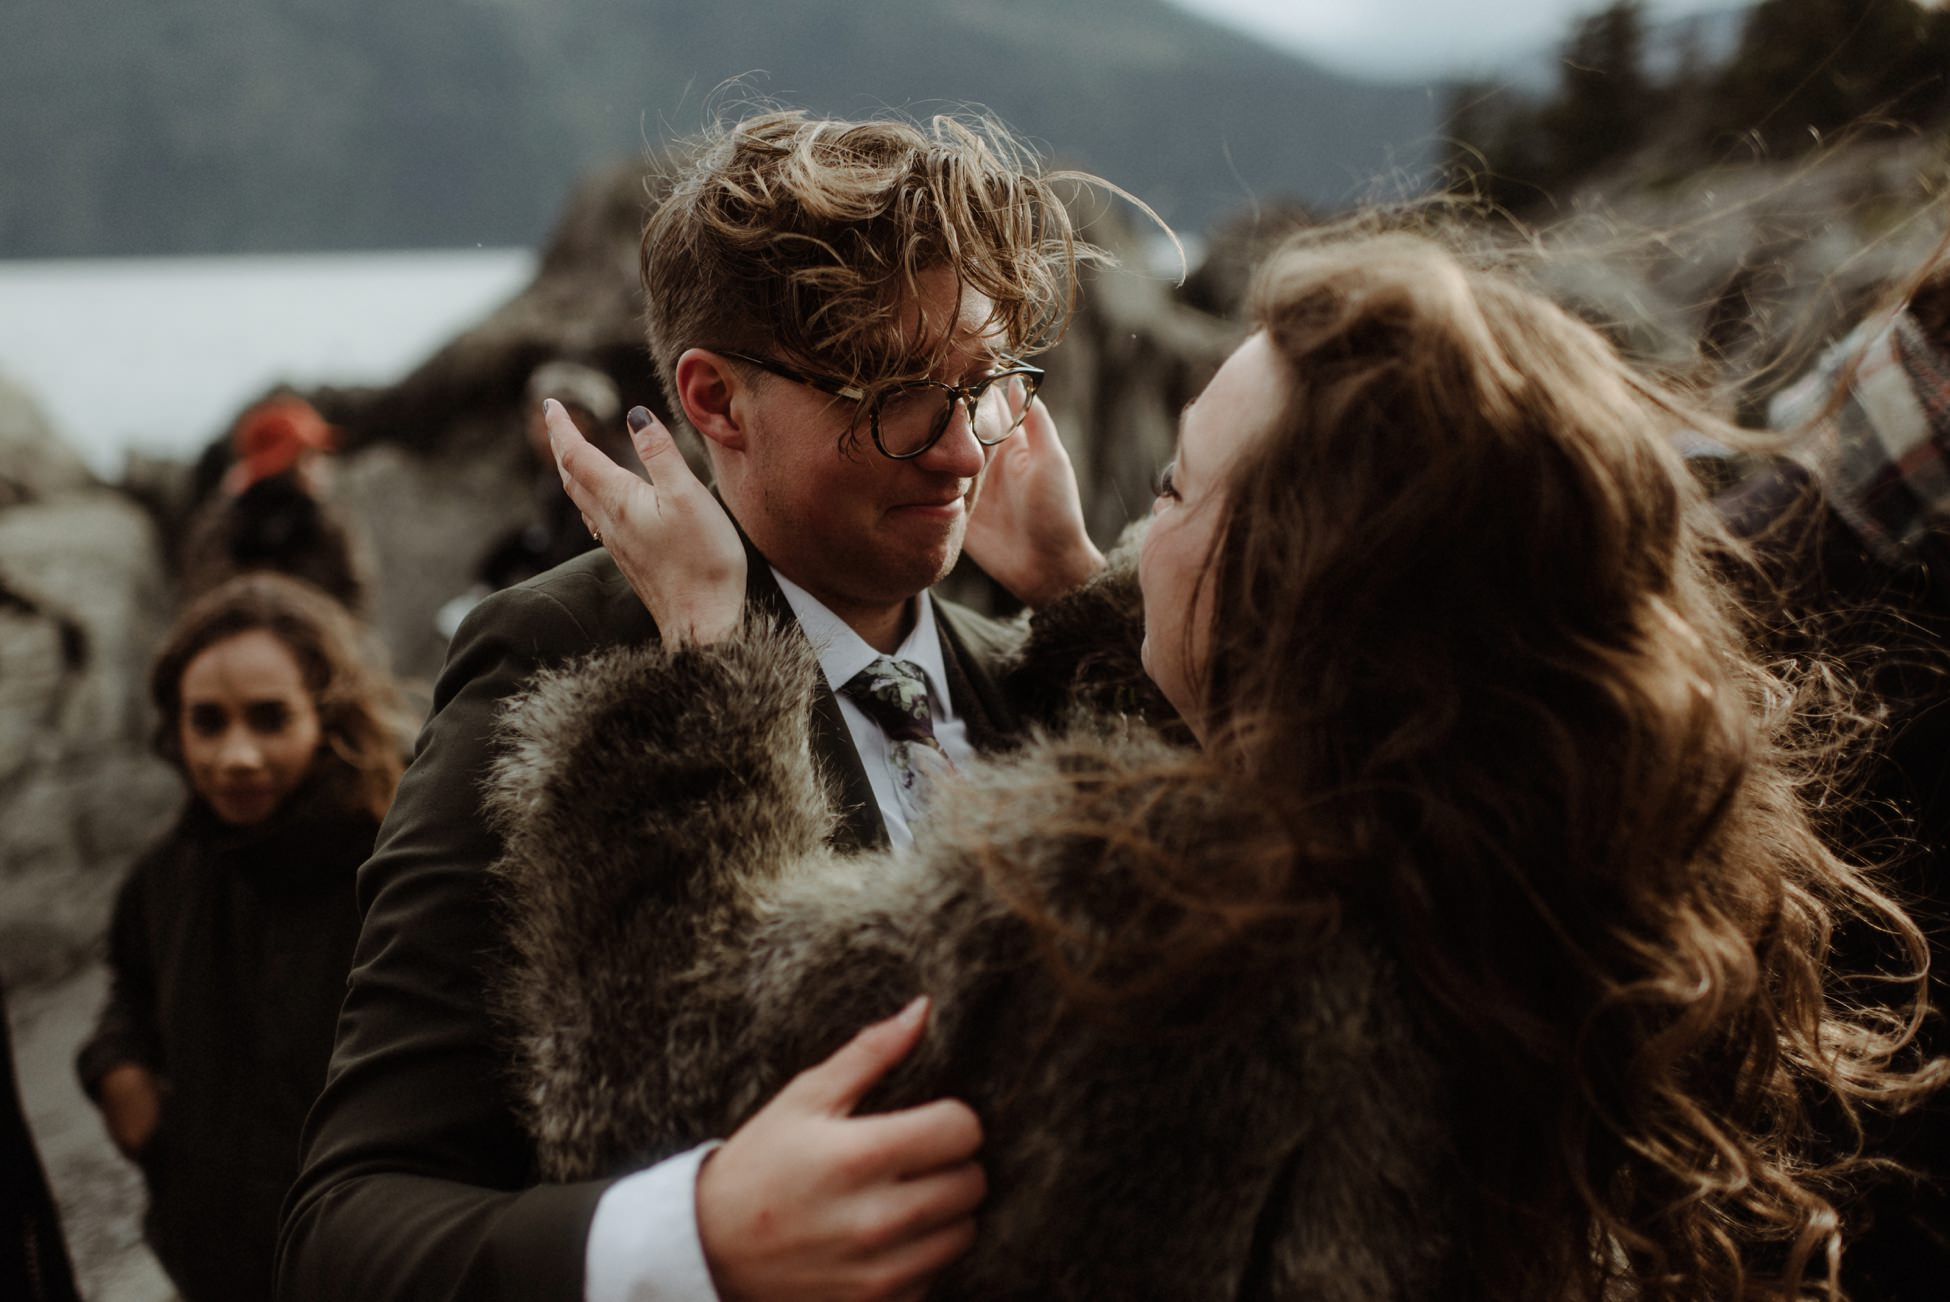 alaska wedding photographer 0123 1